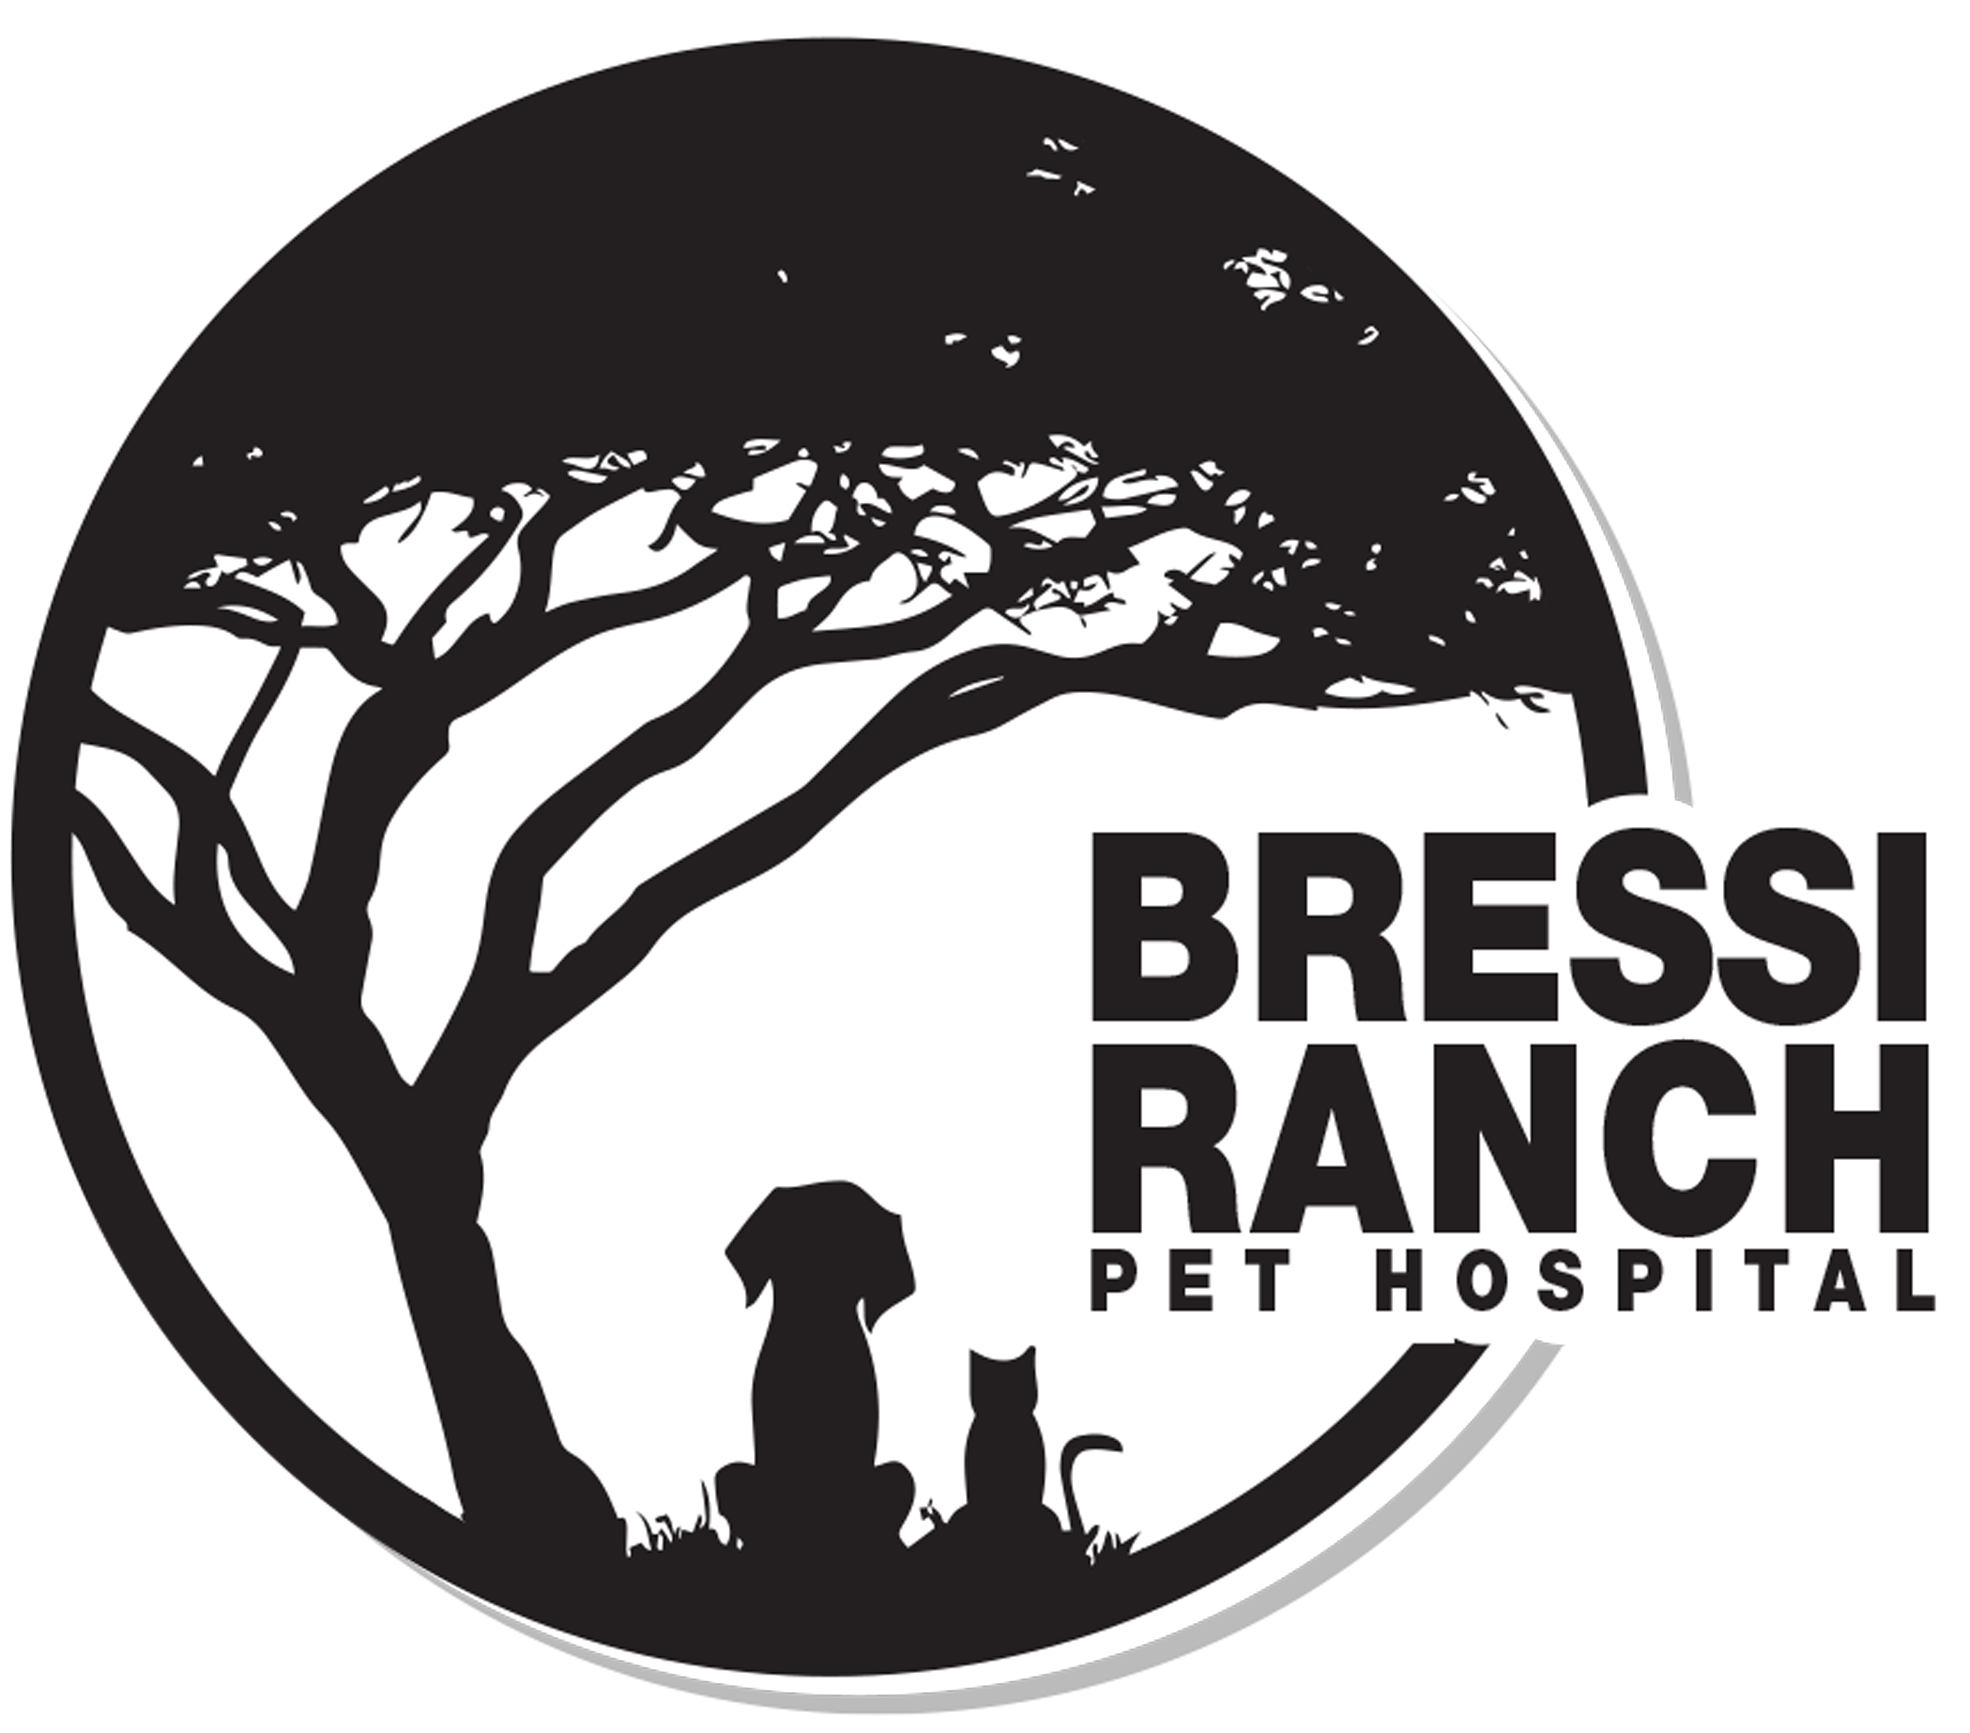 Bressi Ranch Pet Hospital